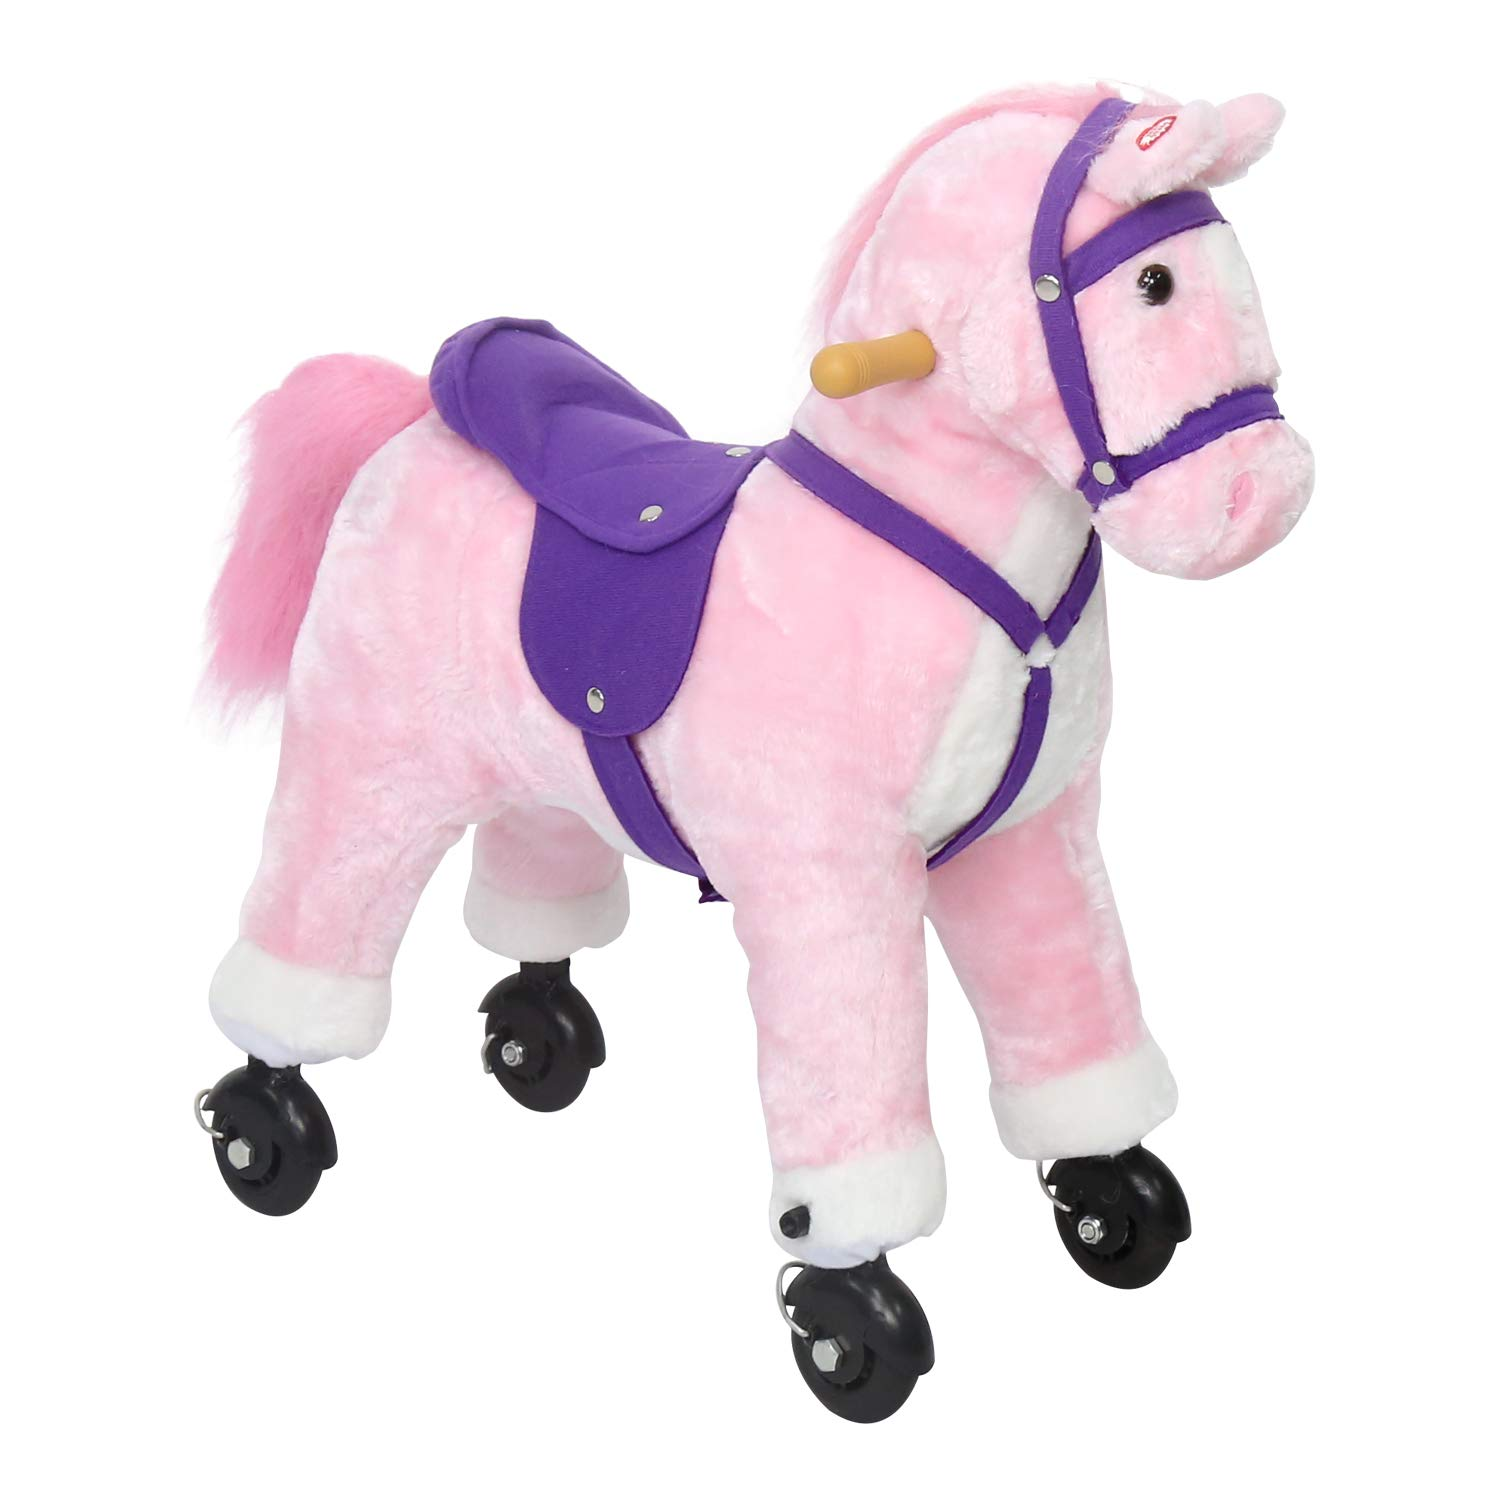 Kinbor Rocking Horse Plush Kids Baby Girls Boys Pony Rocking Horse Ride on Toy Walking Horse Children's Day Birthday Gift with Wheels and Neigh Sound